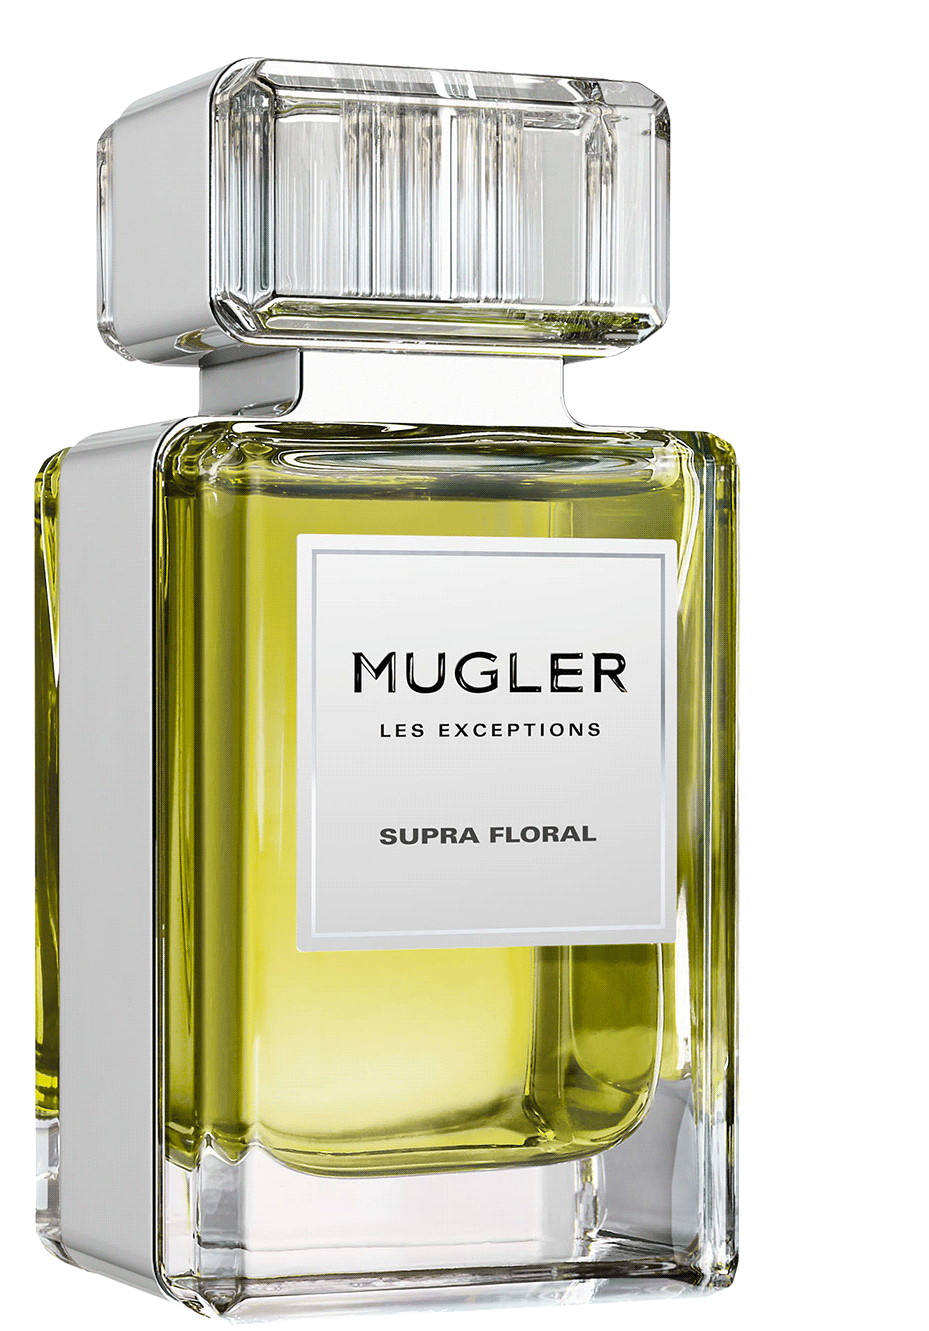 Thierry Mugler Les Exceptions Supra Floral EDP